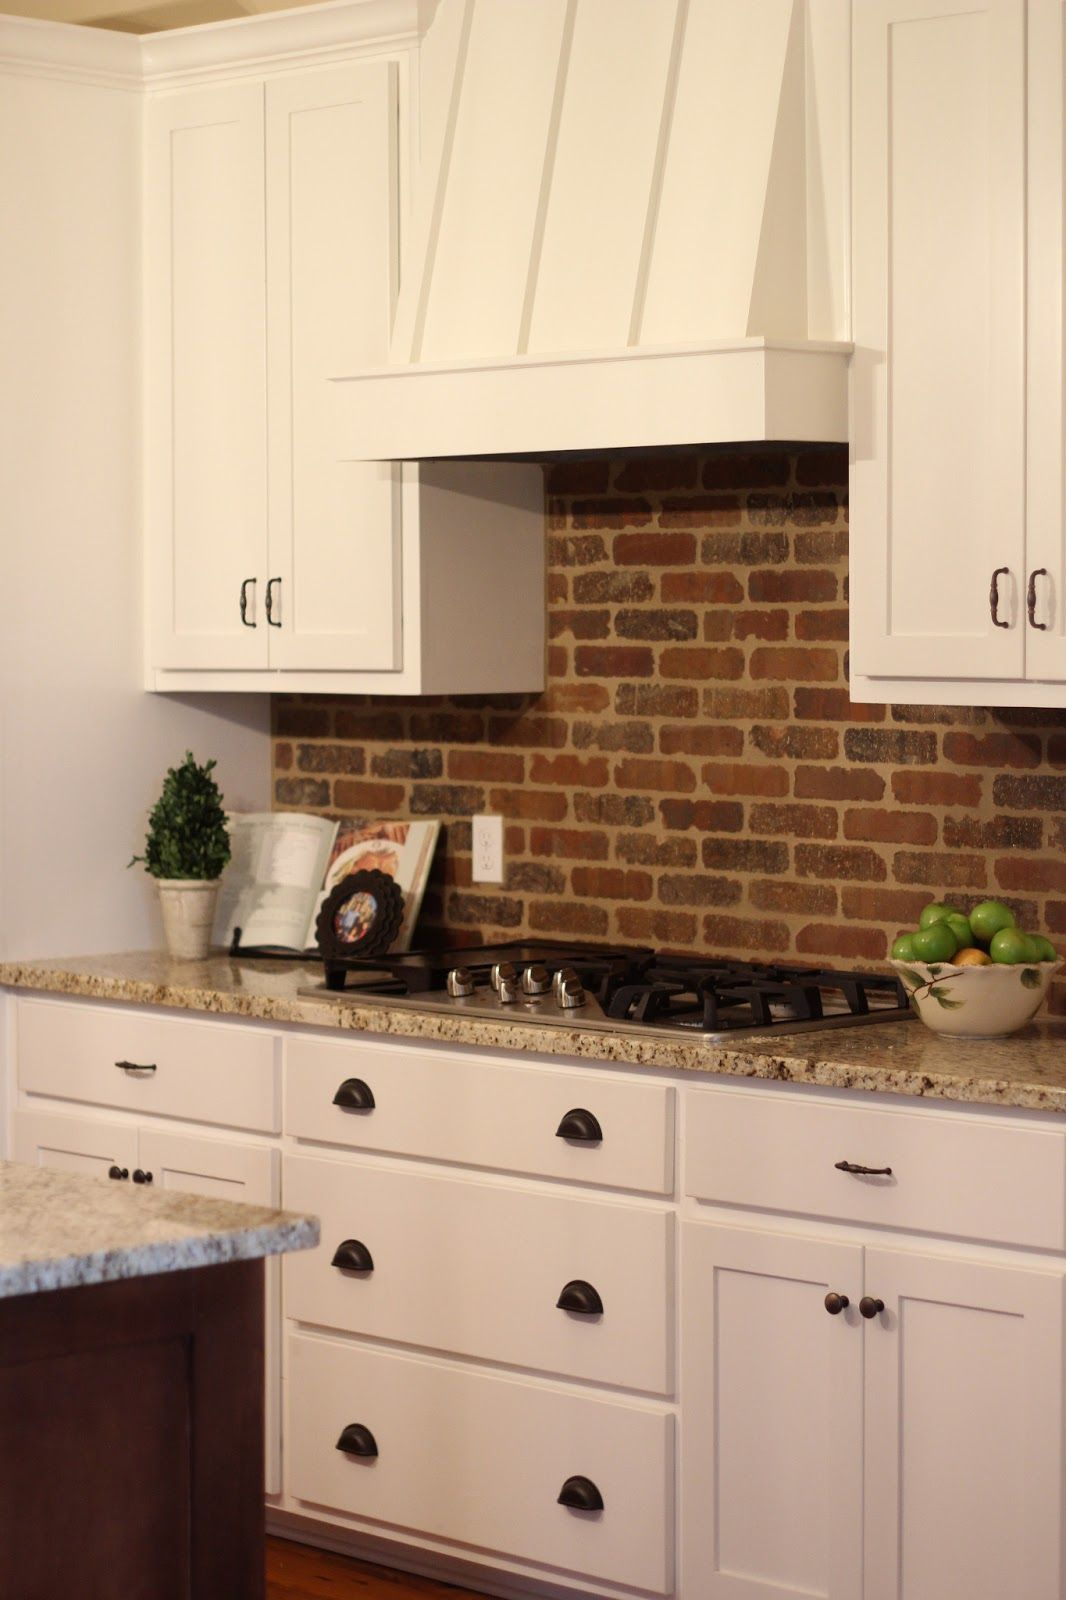 a modern farmhouse trendy kitchen backsplash brick kitchen brick backsplash kitchen on farmhouse kitchen backsplash id=81227